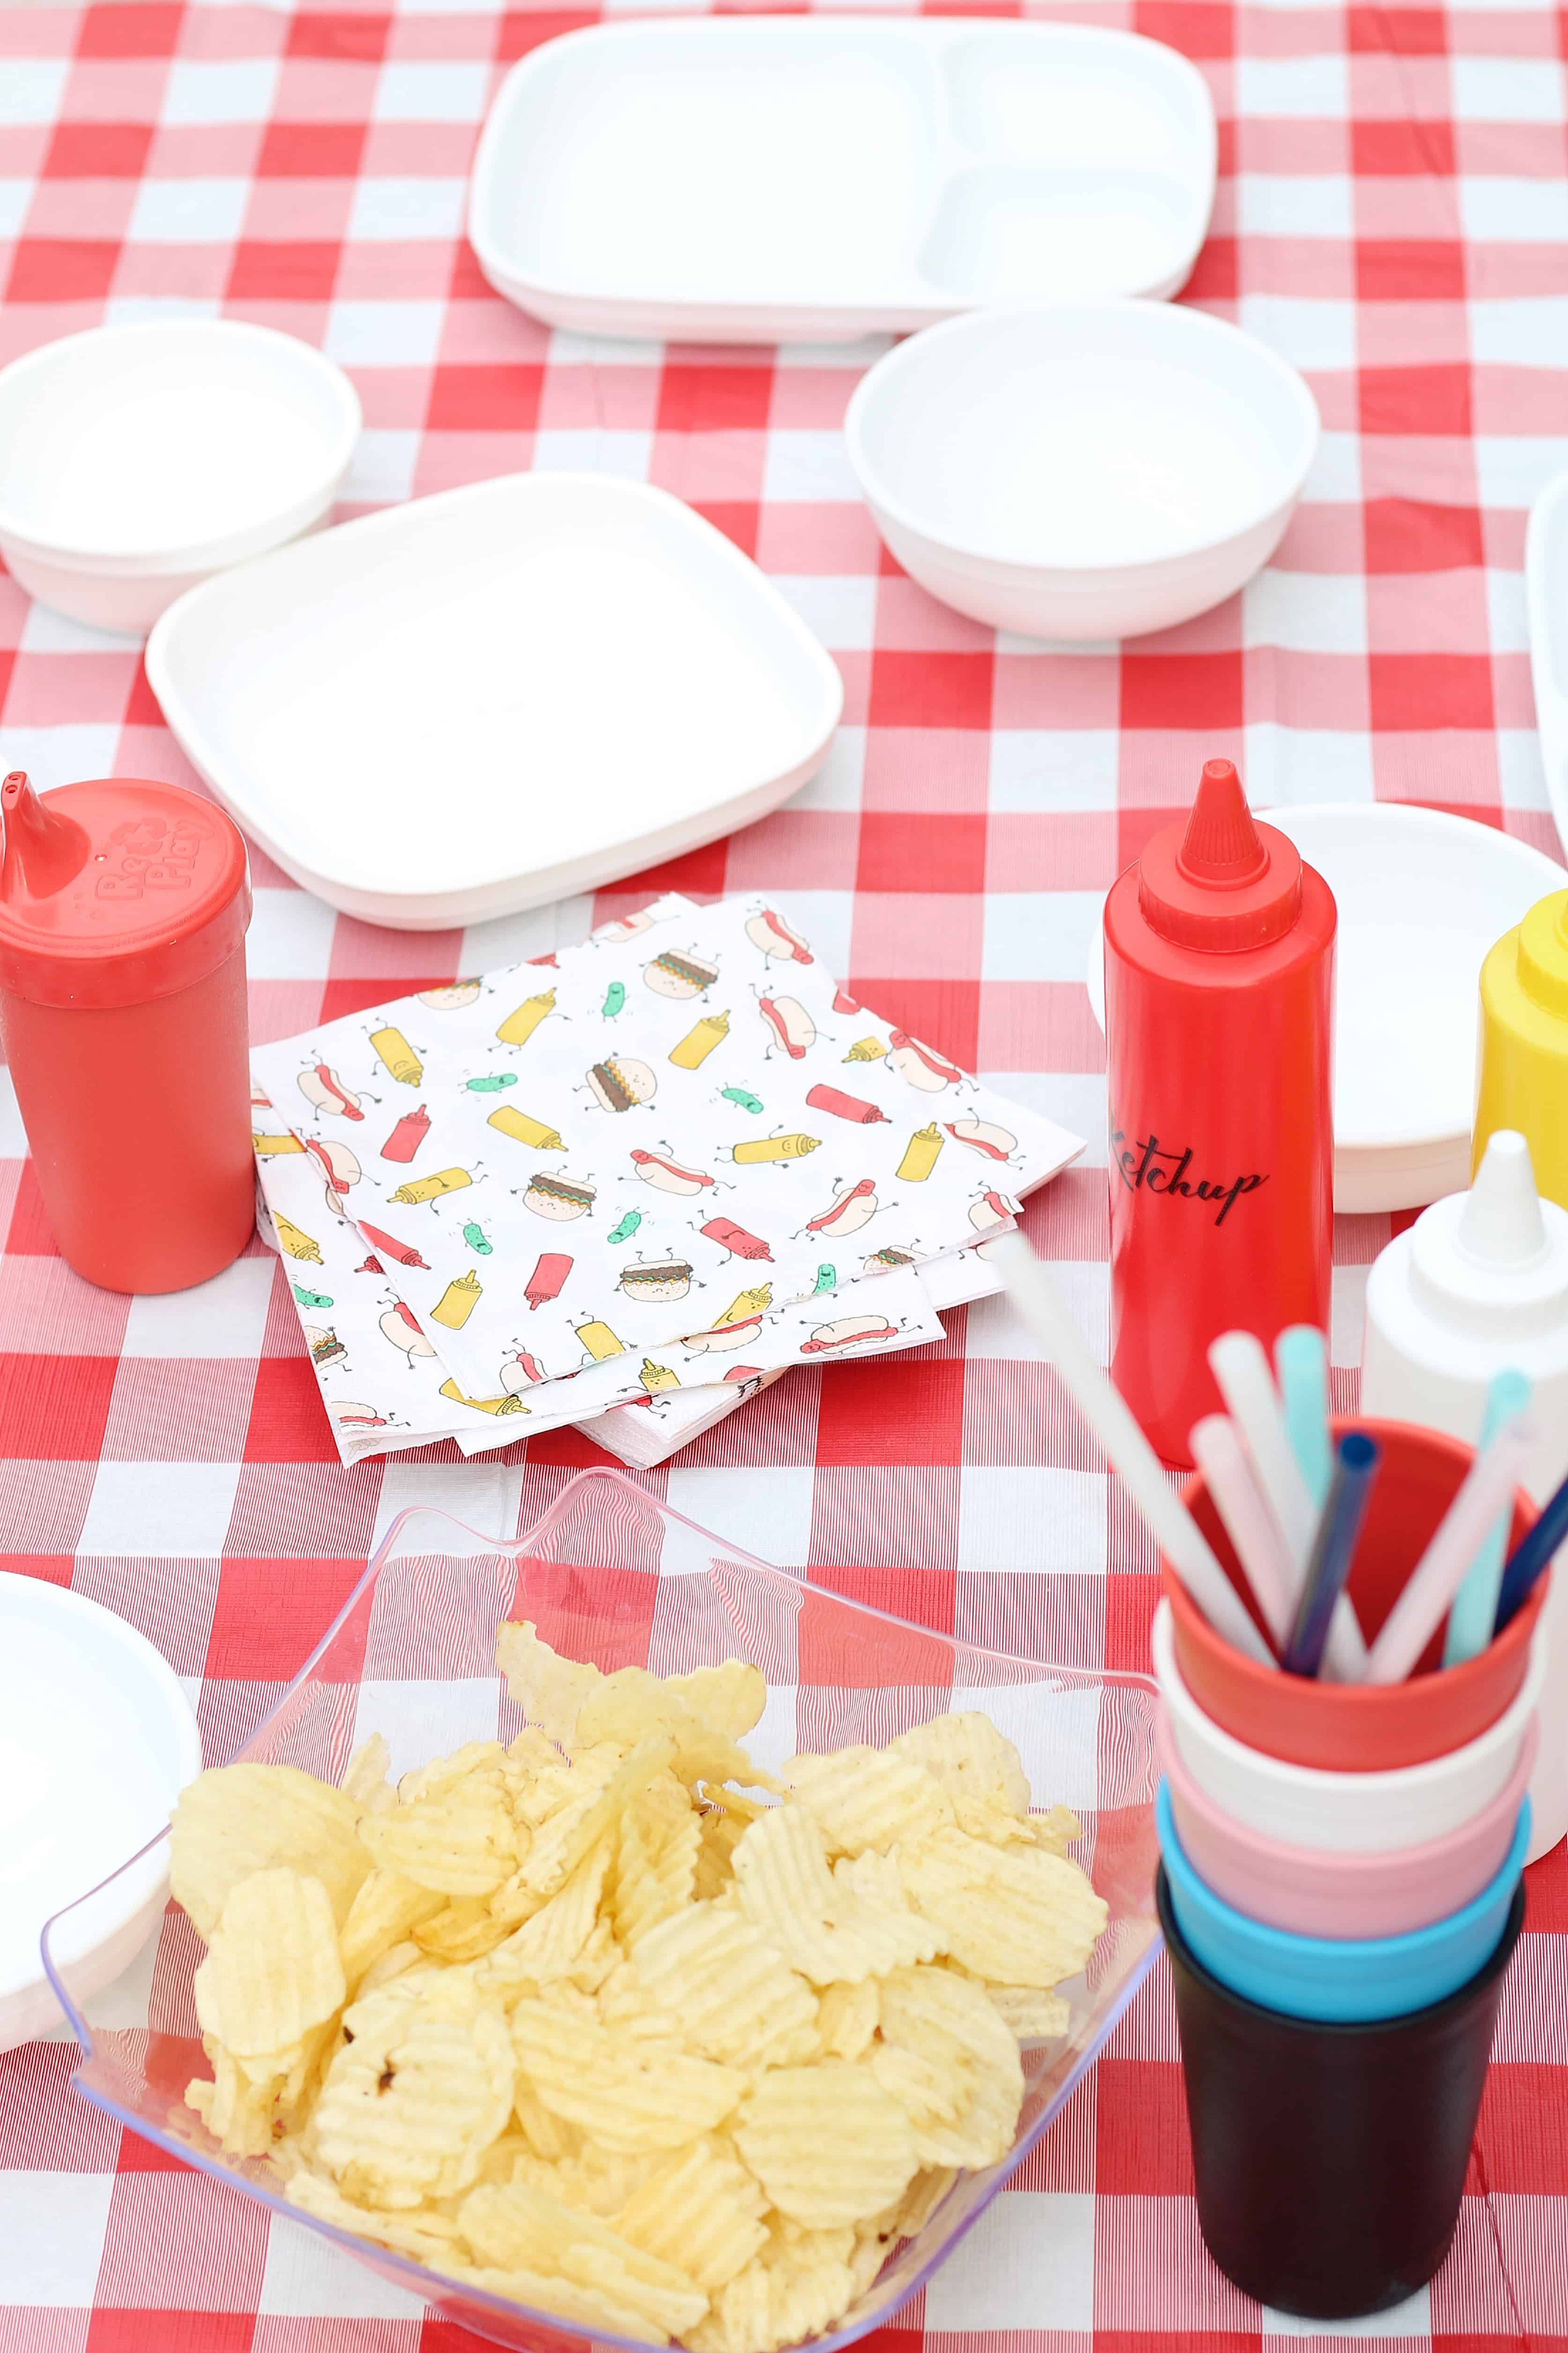 table scape with red and white table cloth